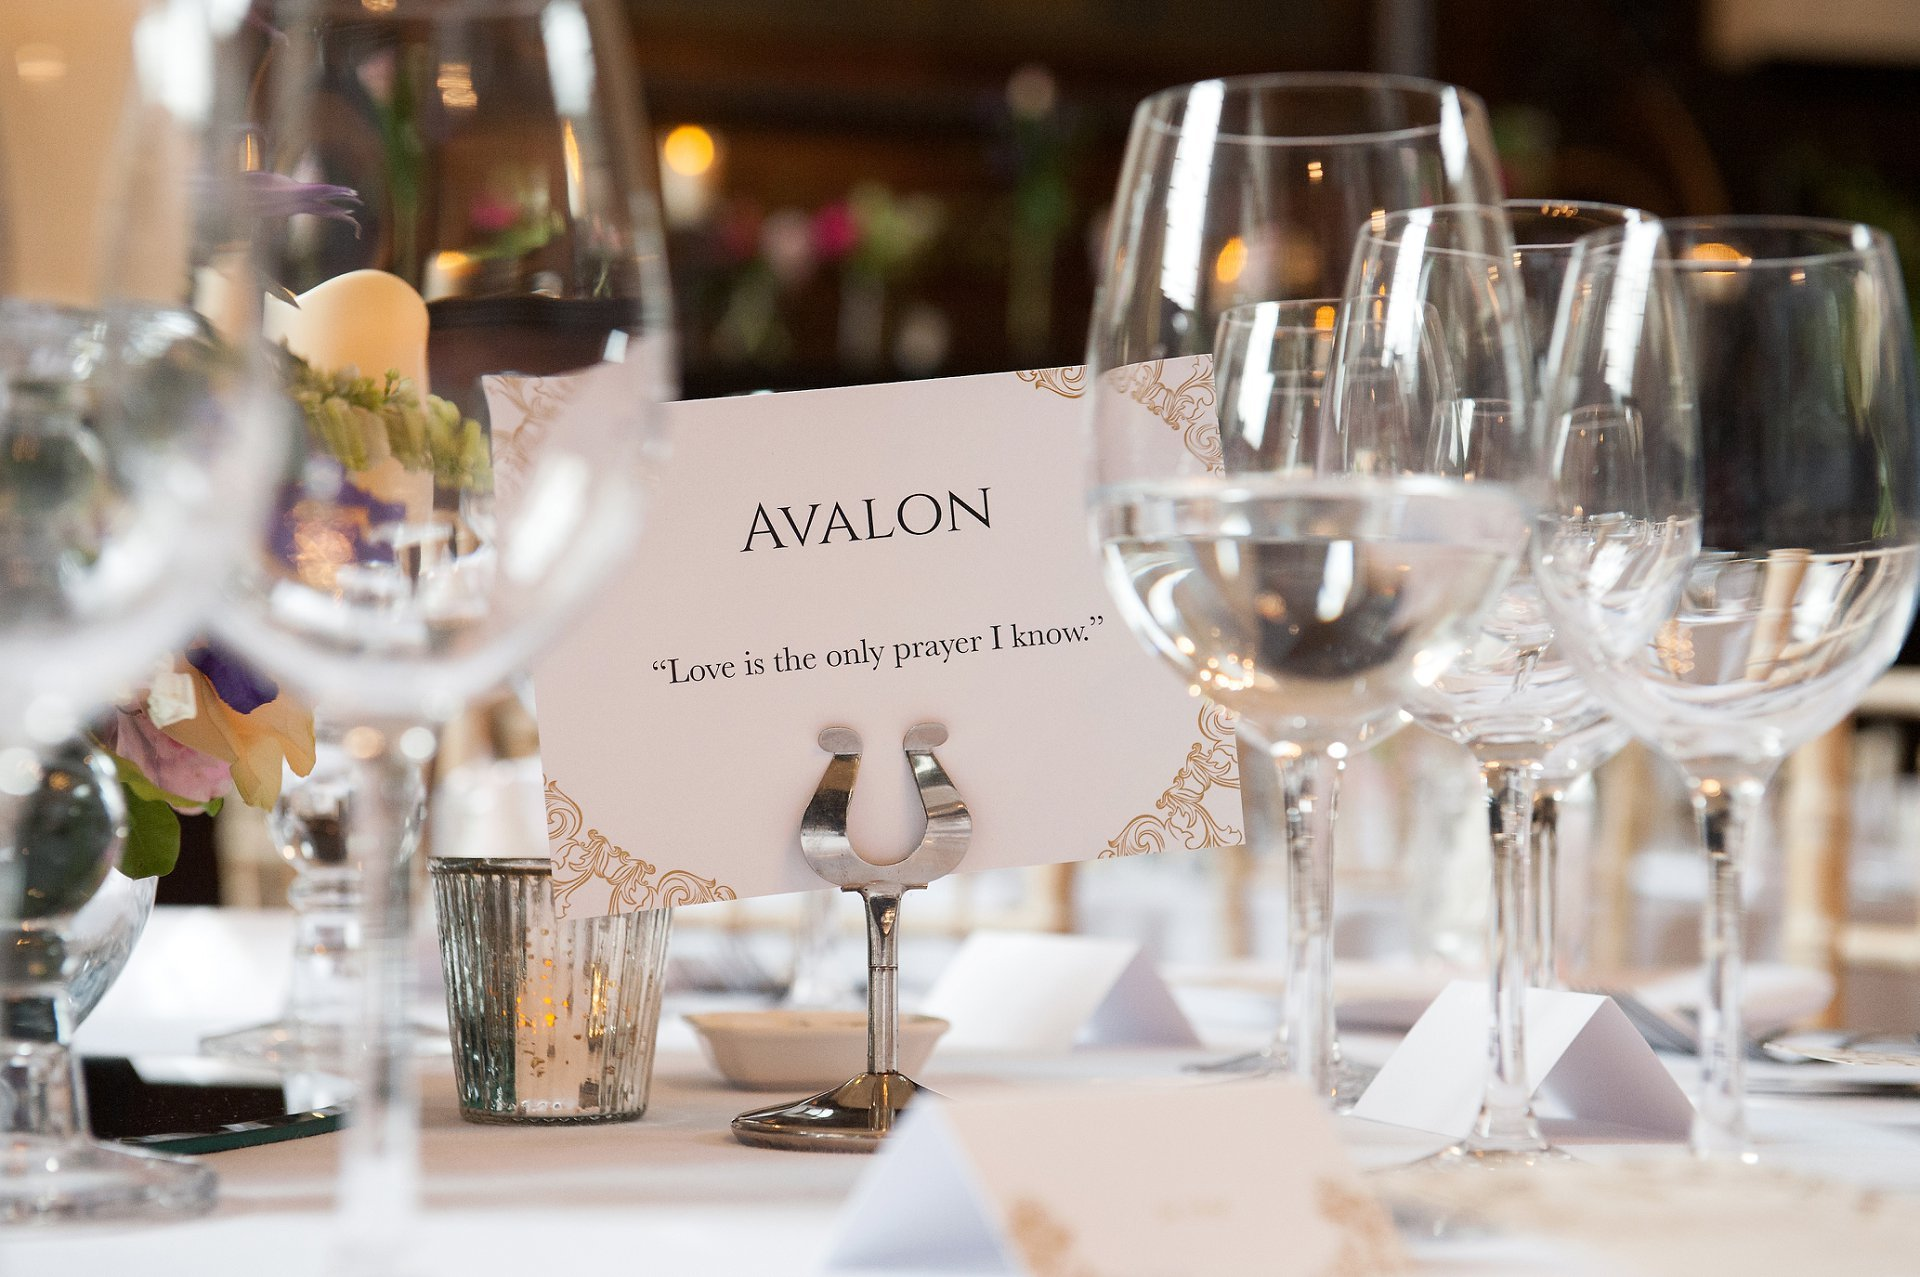 Book theme table names in this trantional English Fulham Palace spring wedding